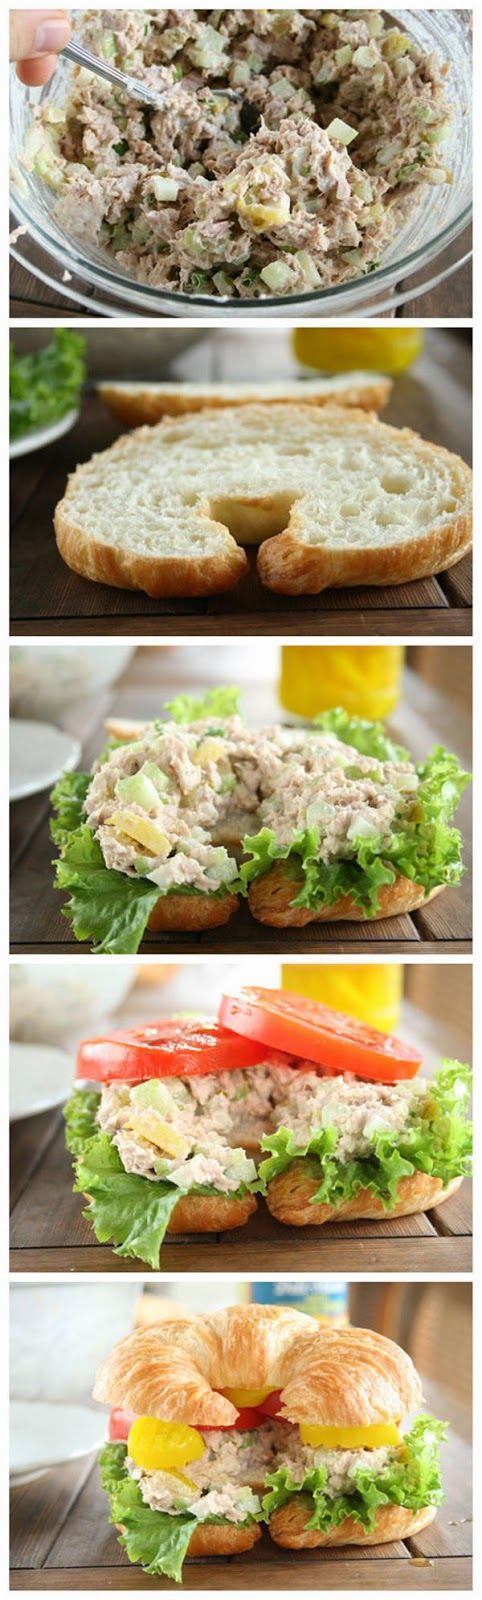 The Best Tuna Fish Sandwich Ingredients 2 – 7 oz. cans tuna packed in water, drained well 3 green onions, sliced {white and green parts} 1/4 cup chopped dill pickles 1 large celery stalk, cho…